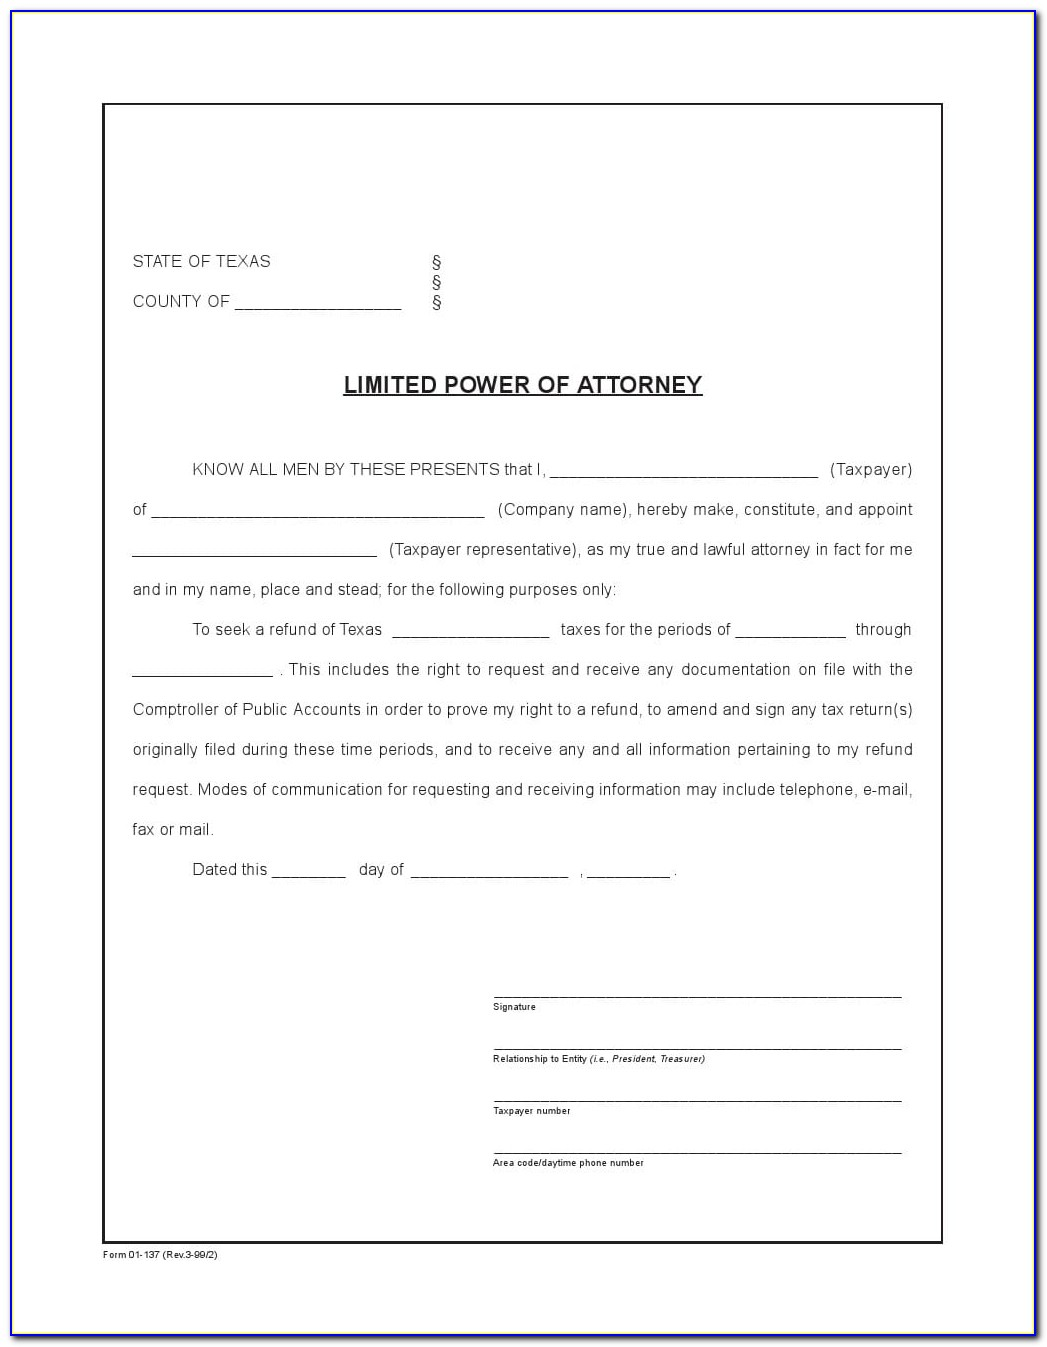 Blank Durable Power Of Attorney Form Virginia